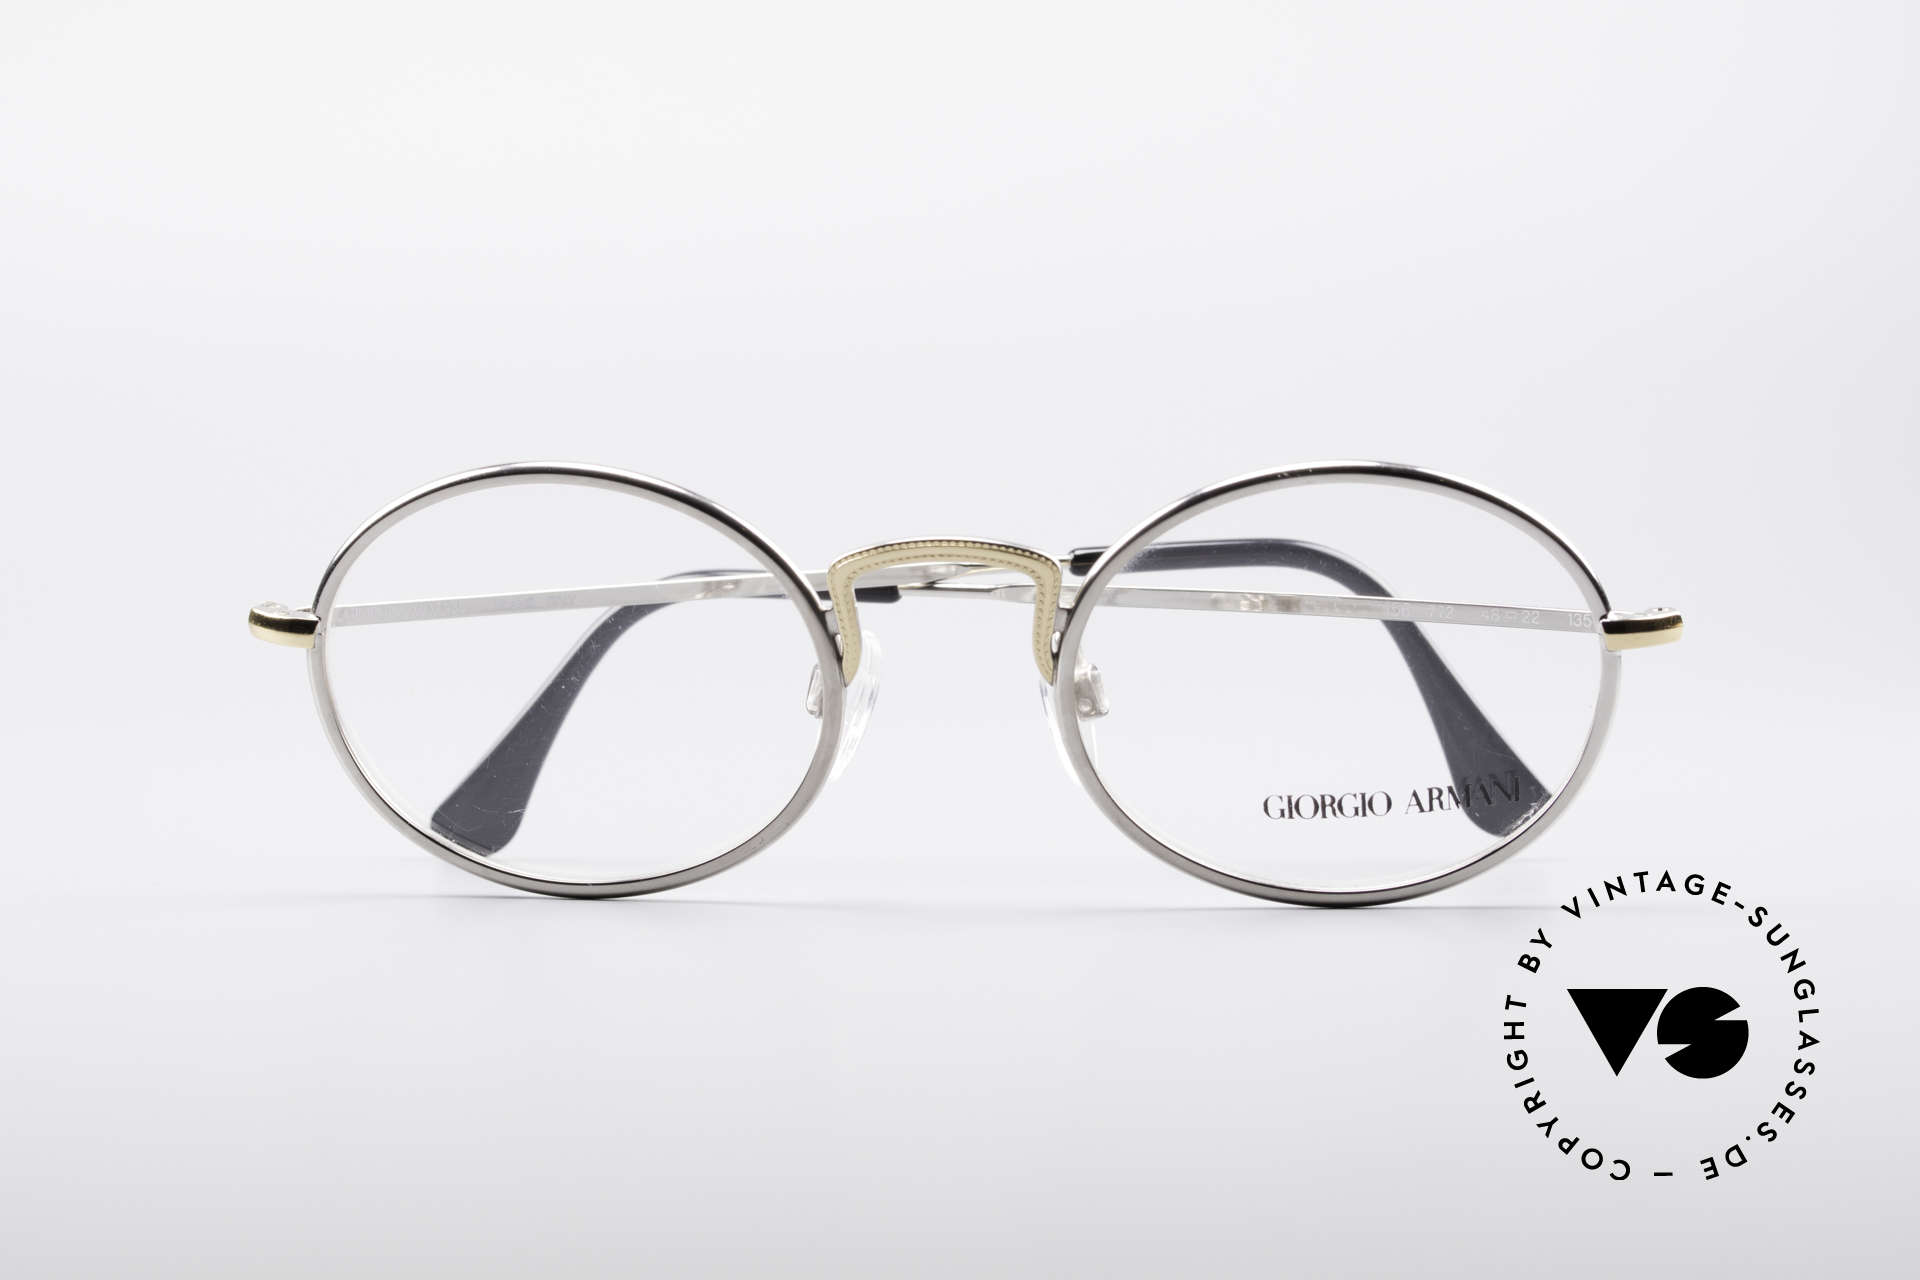 Giorgio Armani 156 Oval Vintage Eyeglasses, frame fits optical lenses or sun lenses optionally, Made for Men and Women